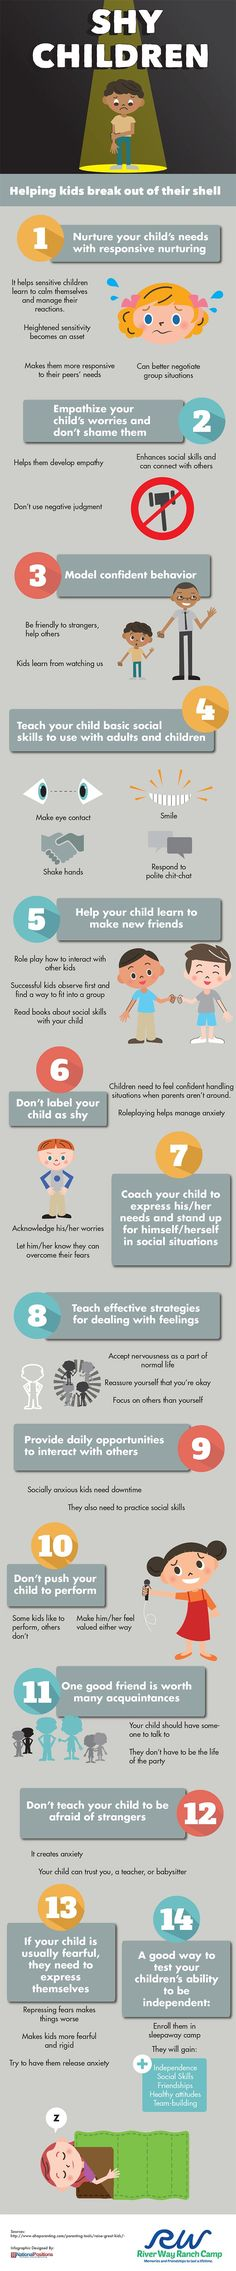 Helping Kids Break out of Their Shell #infographic #Parenting #Education